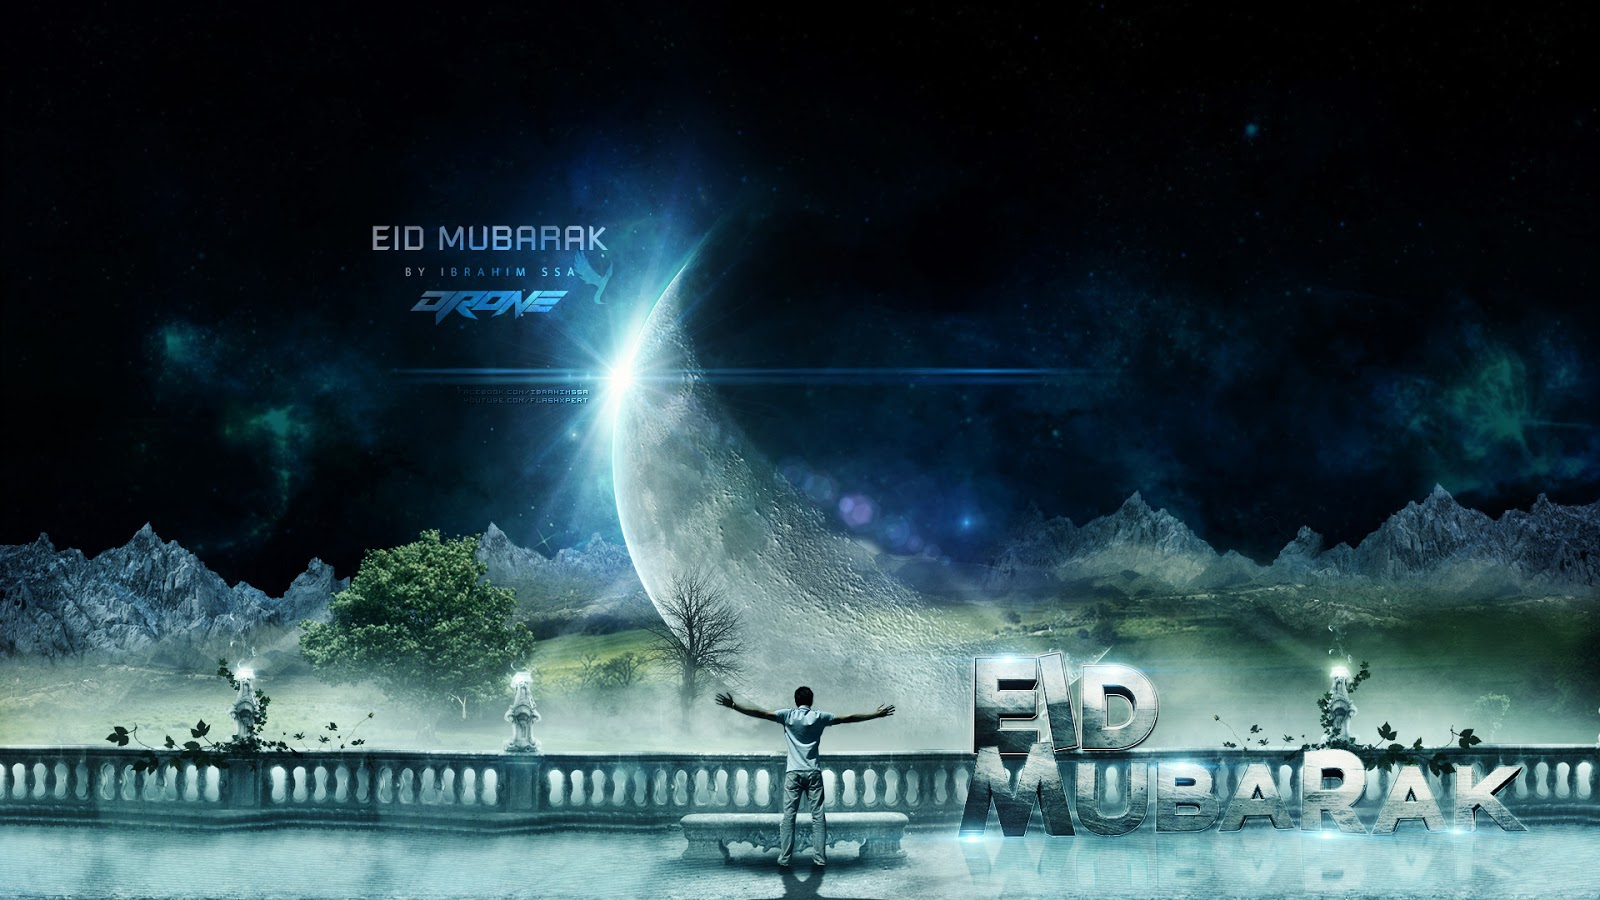 Eid Mubarak hd wallpaper pictures for family